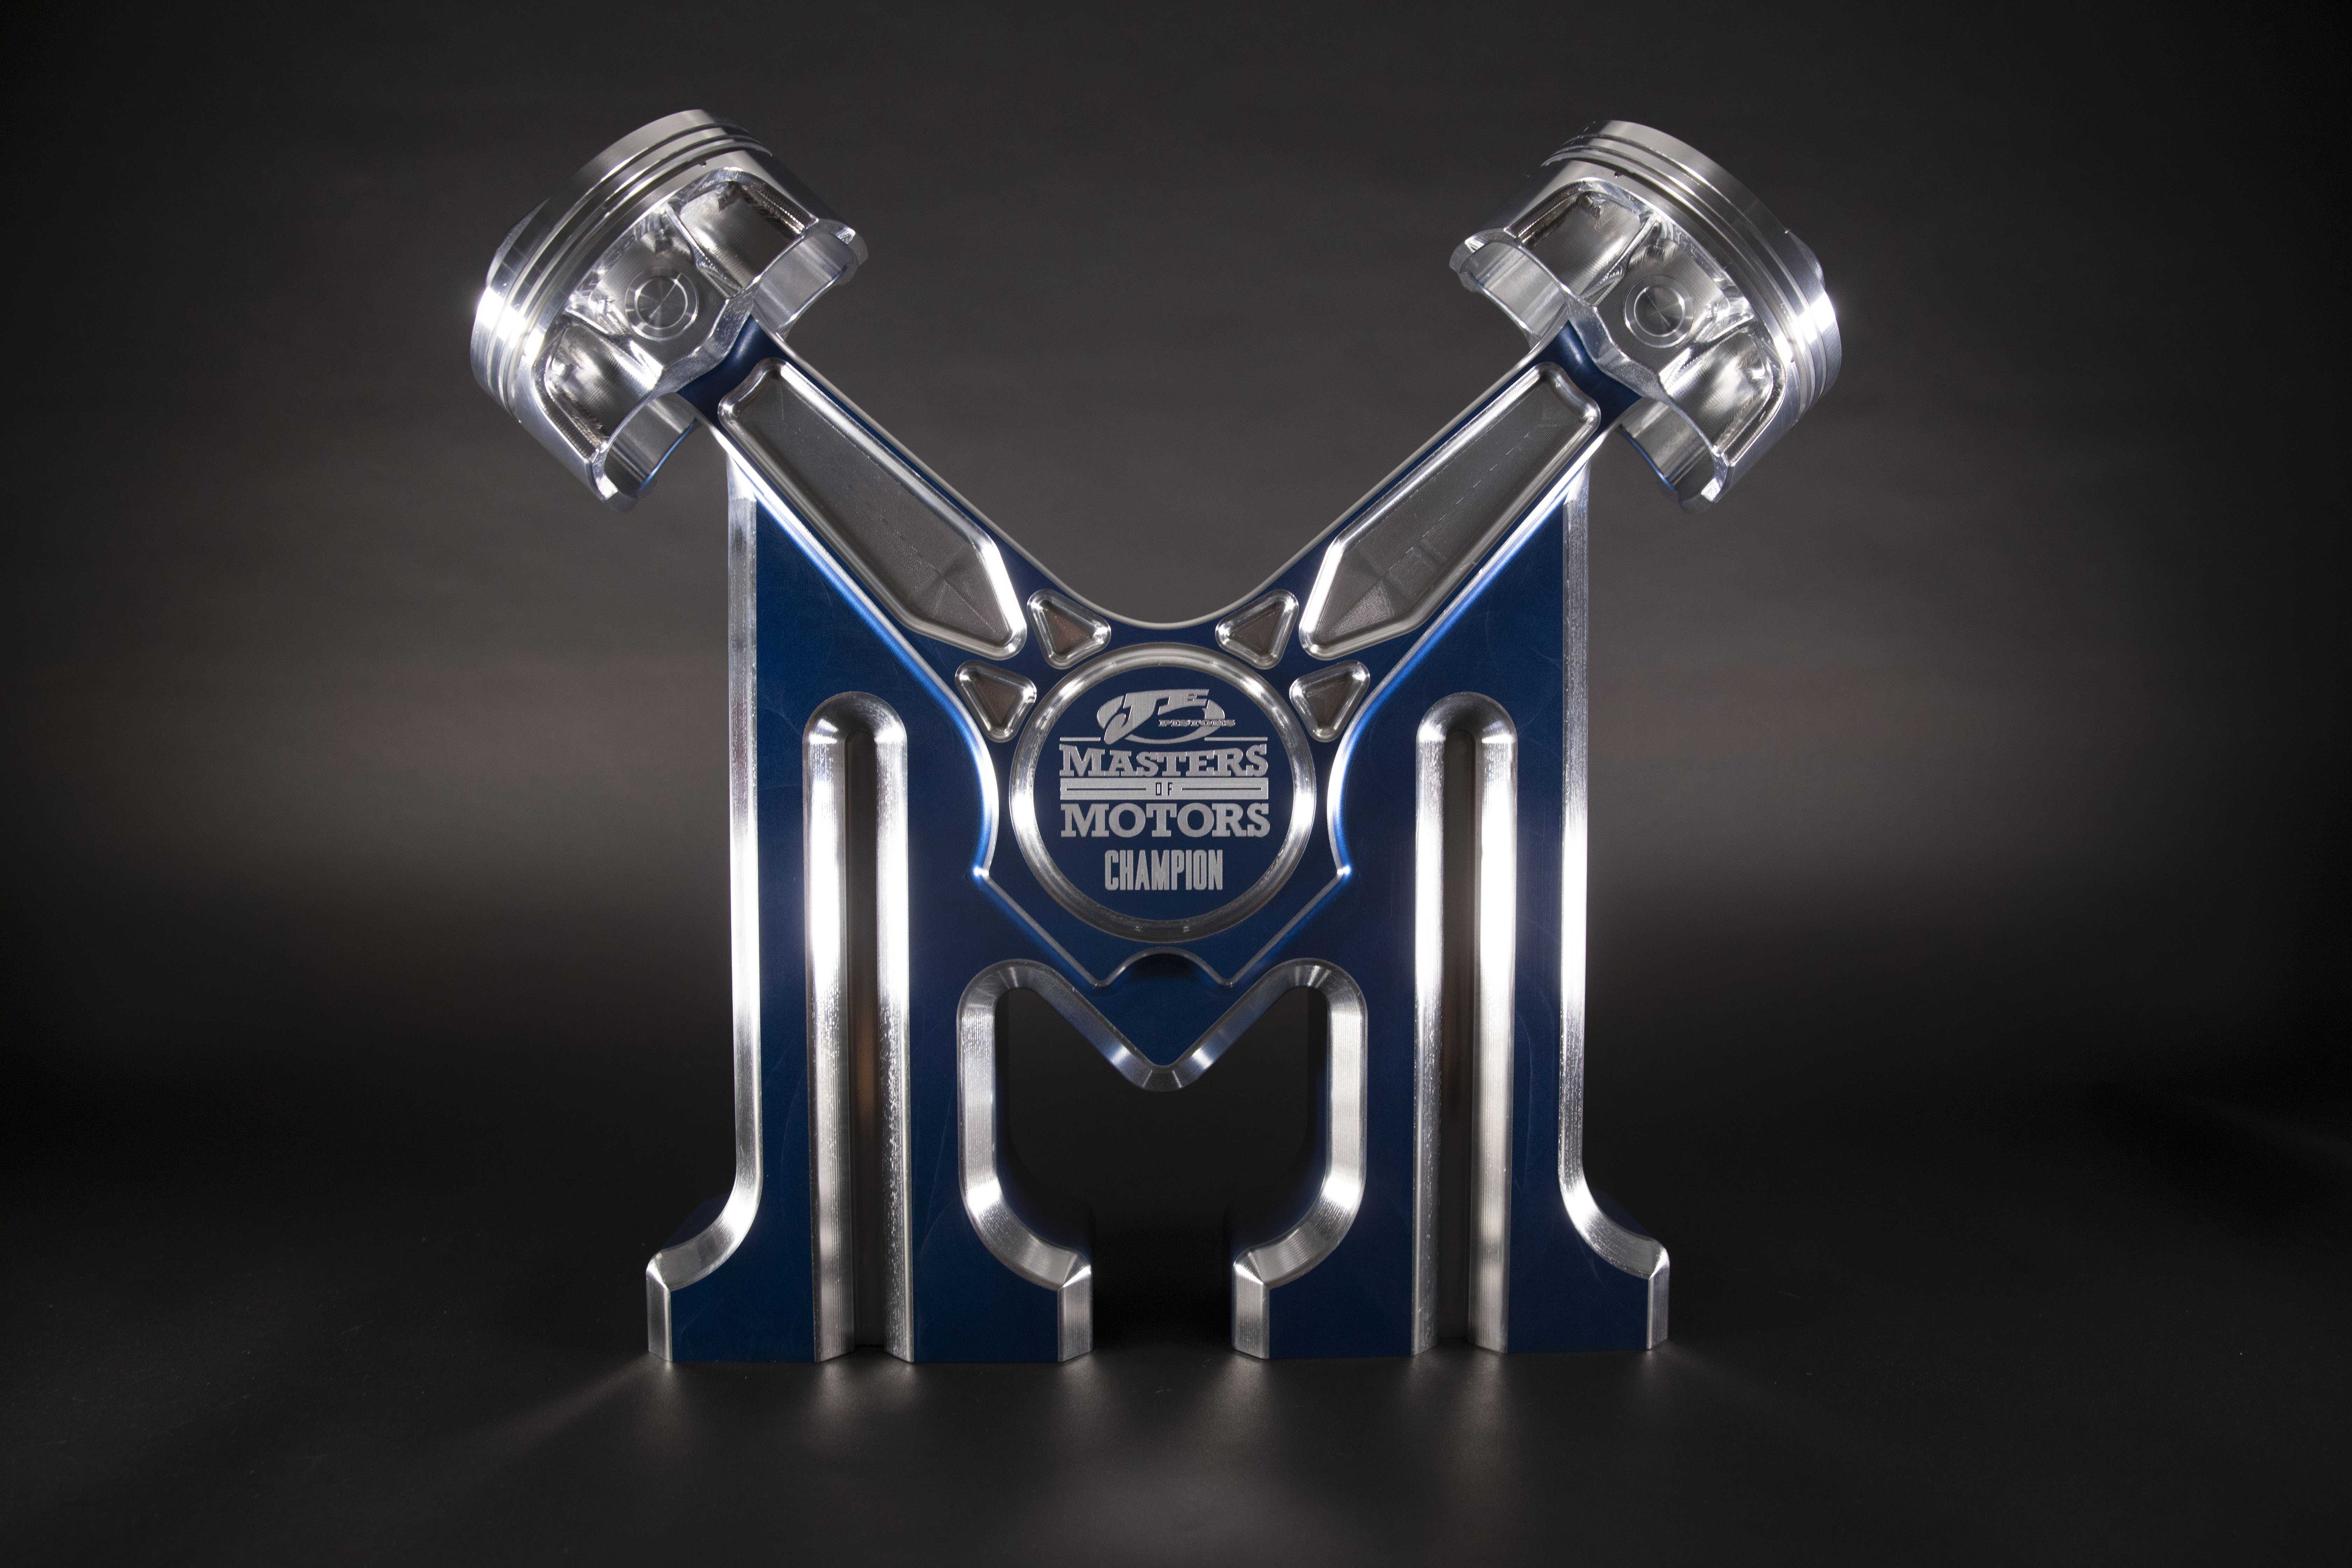 Don't Miss Your Chance to Compete for the 2018 SEMA Masters of Motors Award